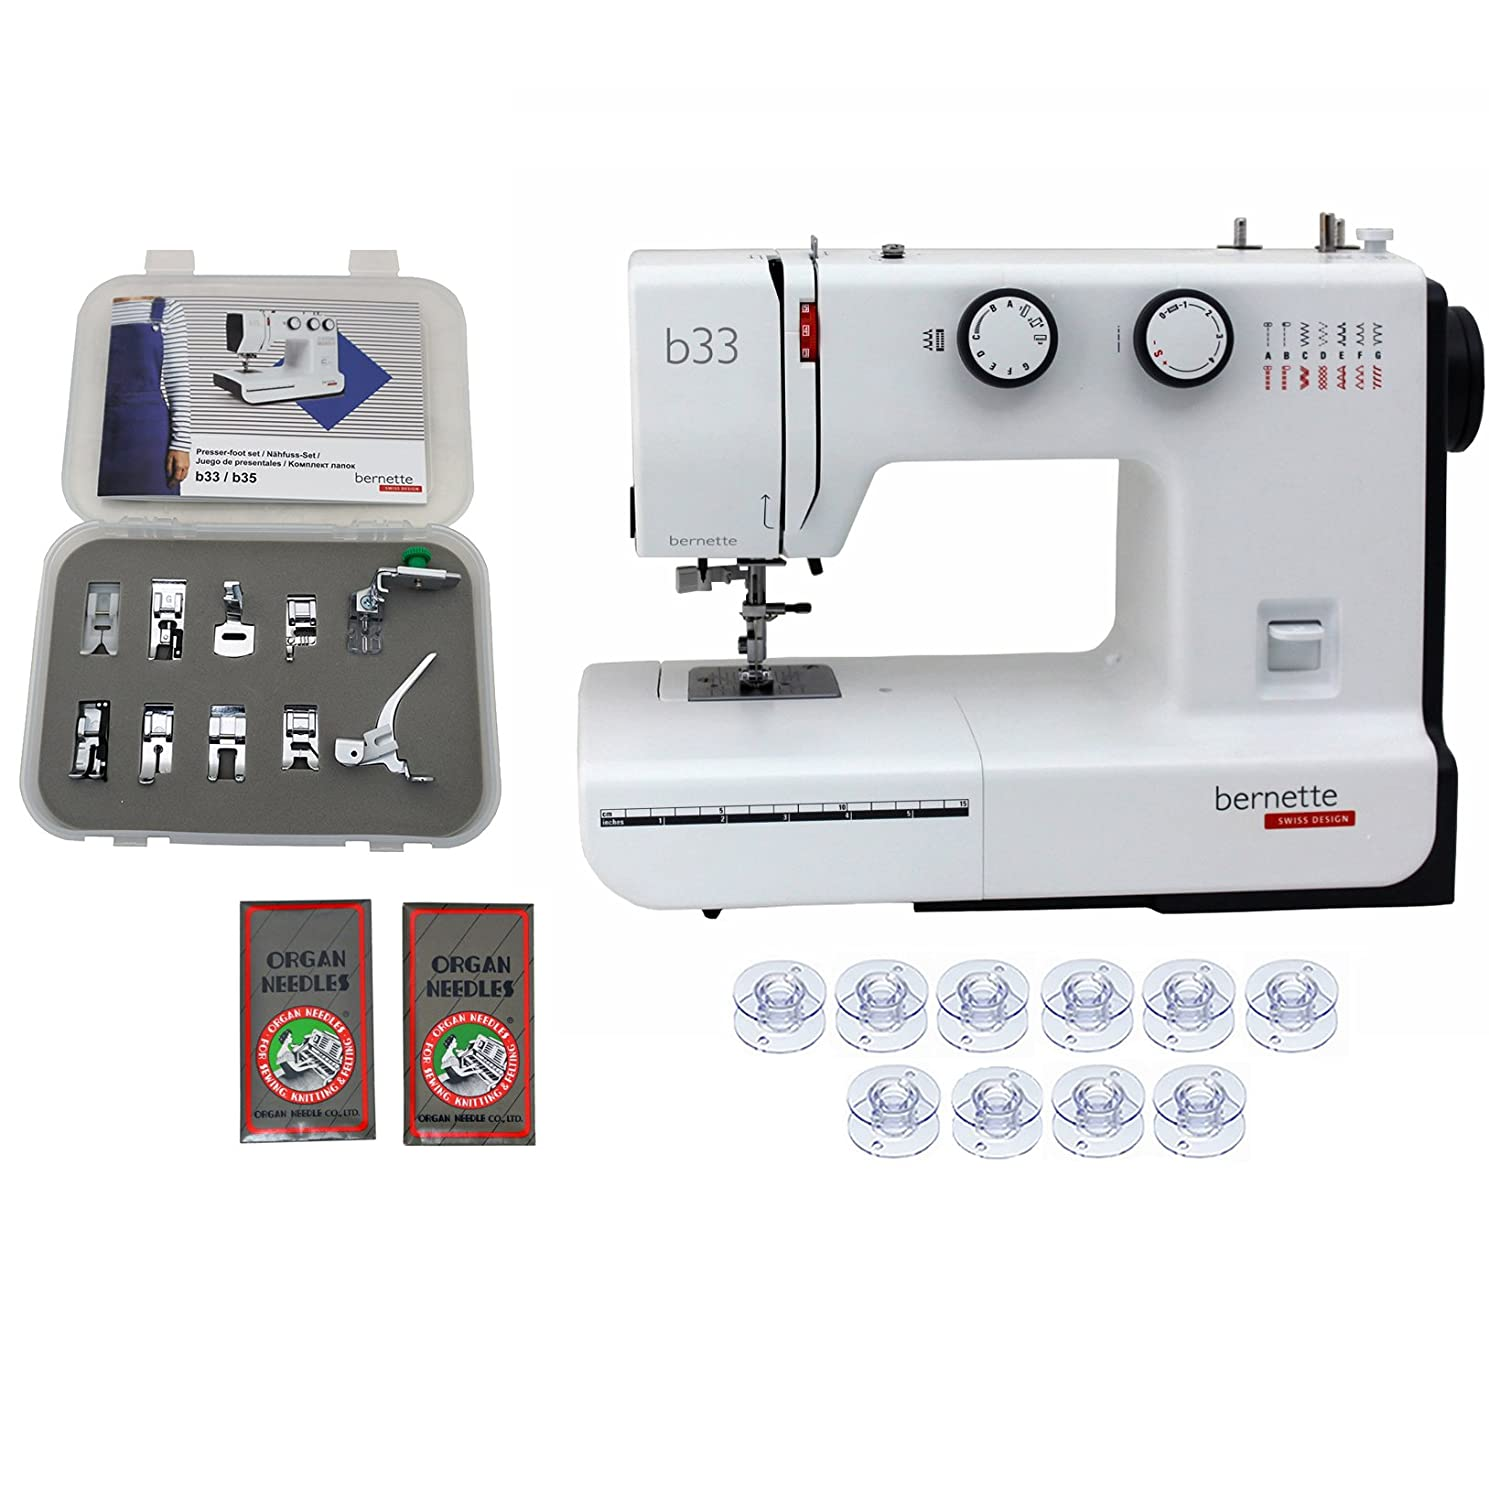 Bernette 33 Swiss Design Sewing Machine with Exclusive Bundle